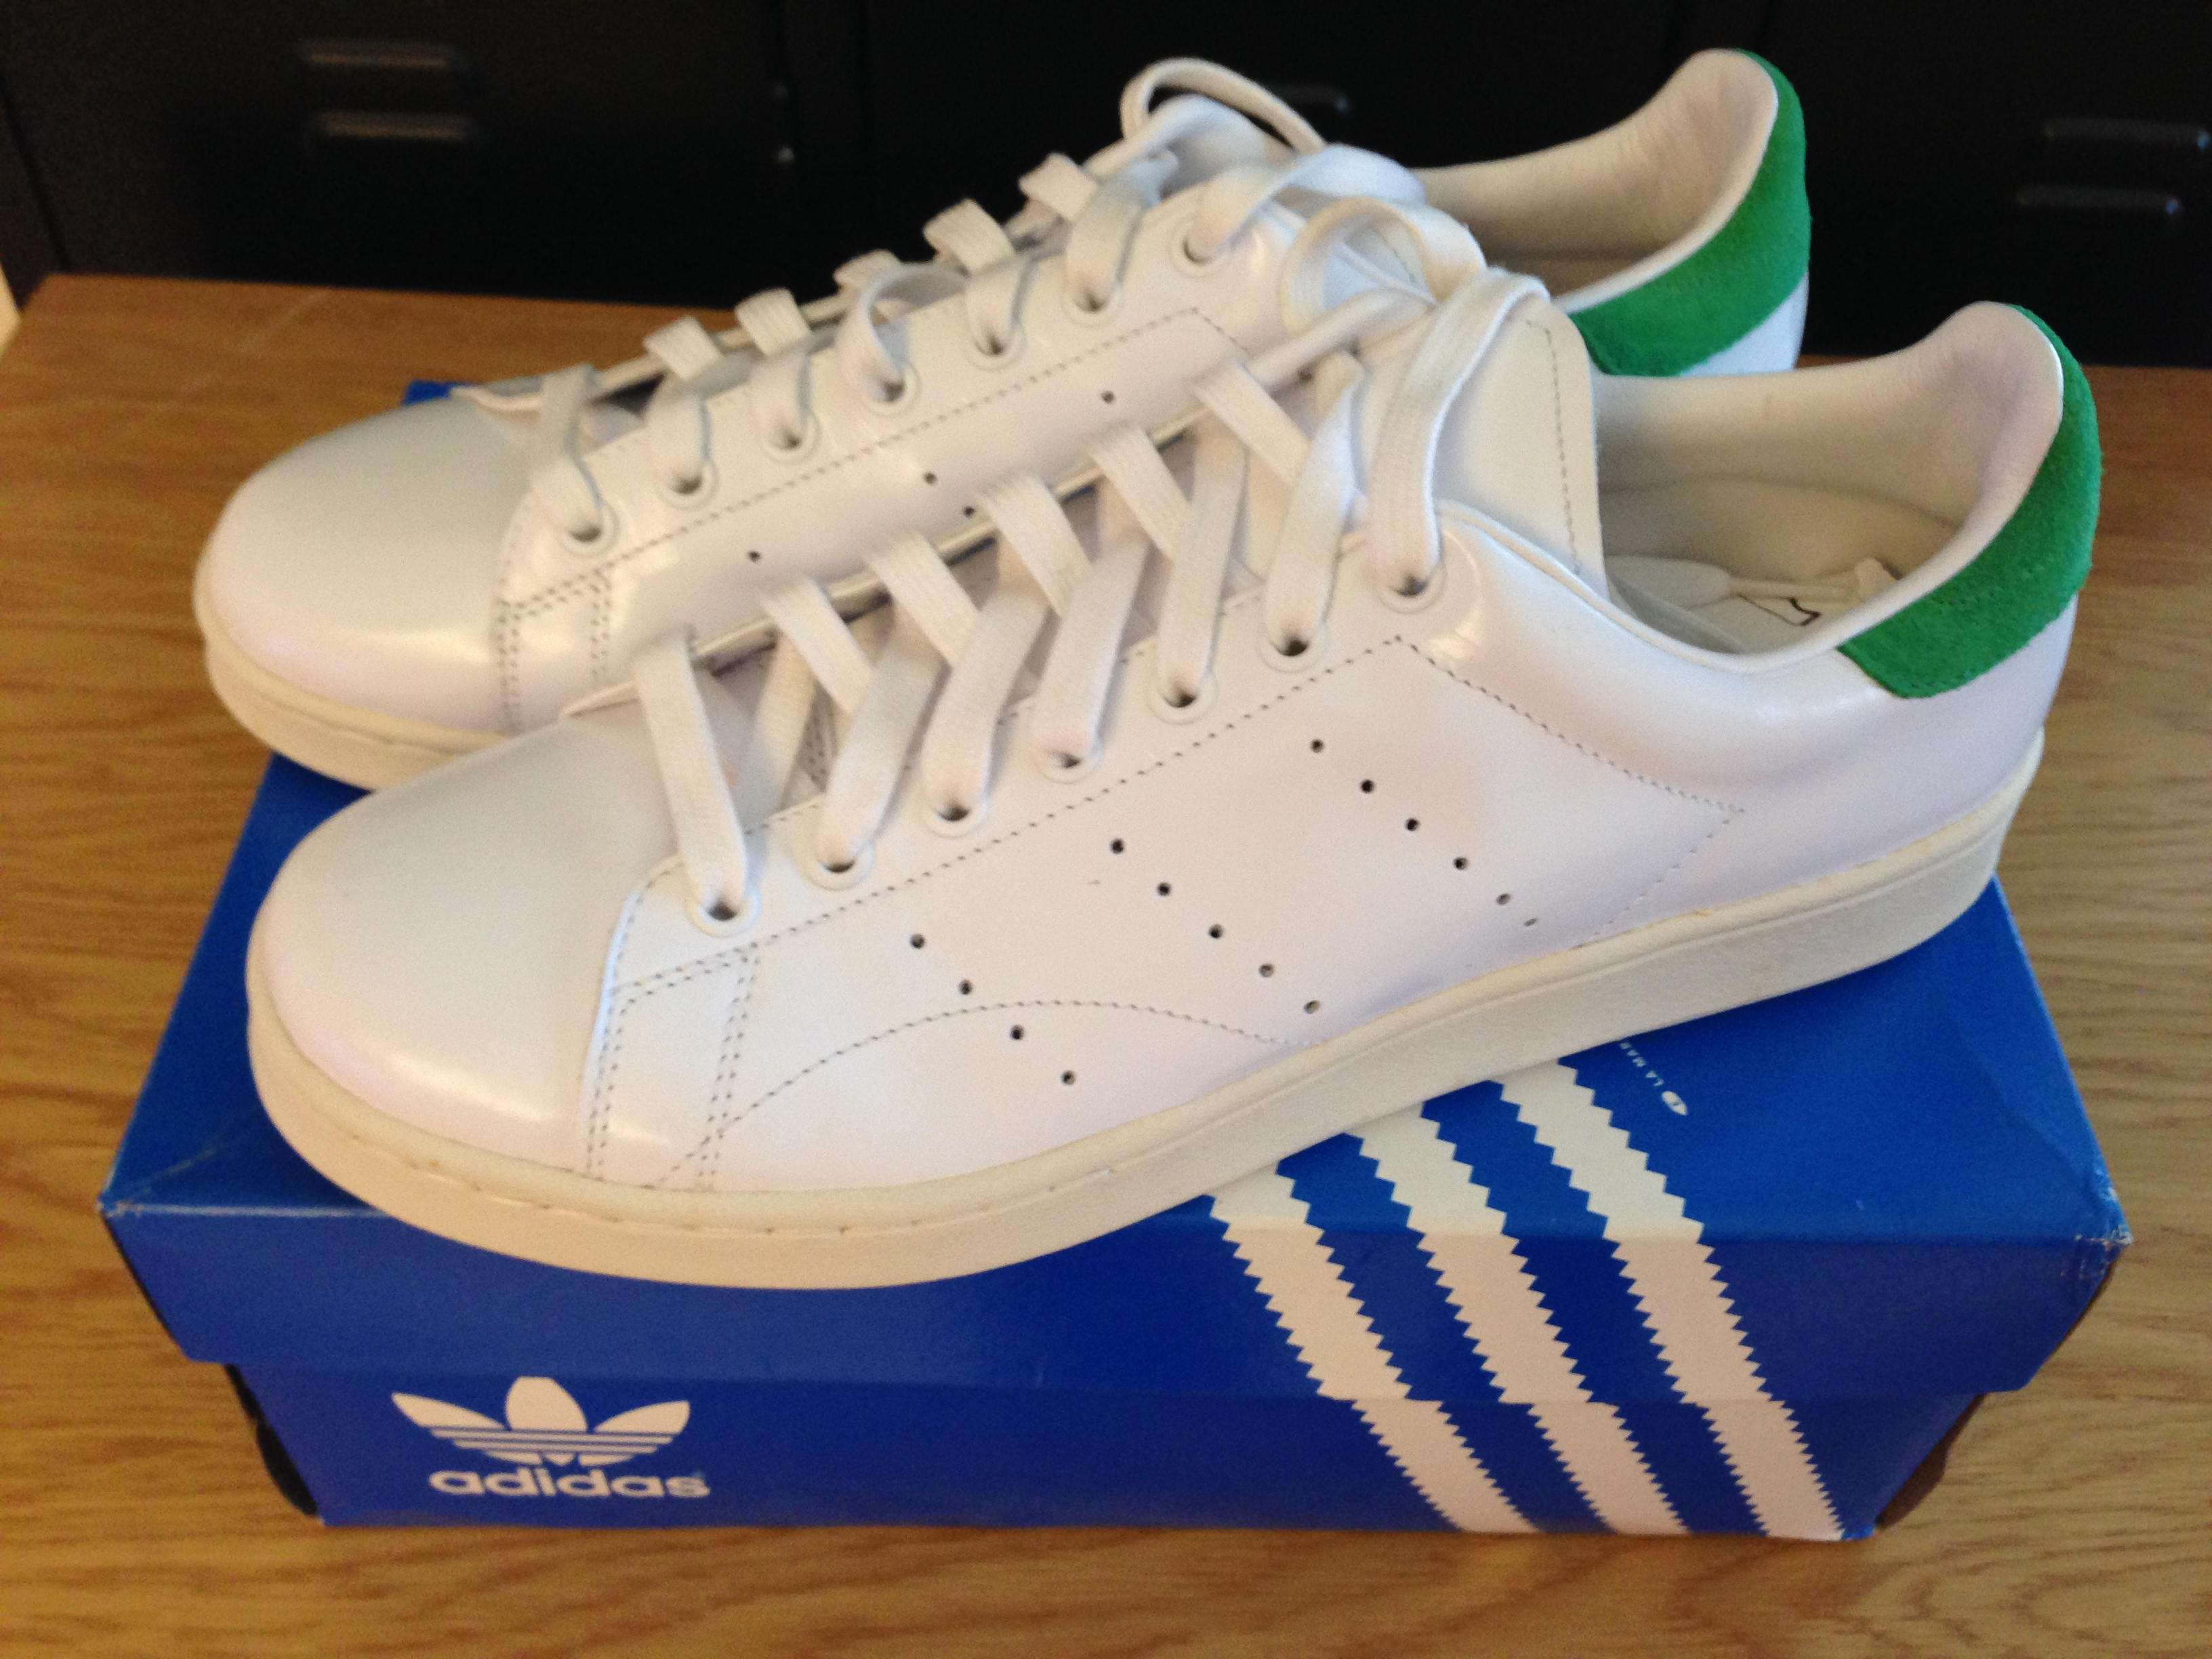 Rango pierna salto  adidas stan smith usa > Clearance shop